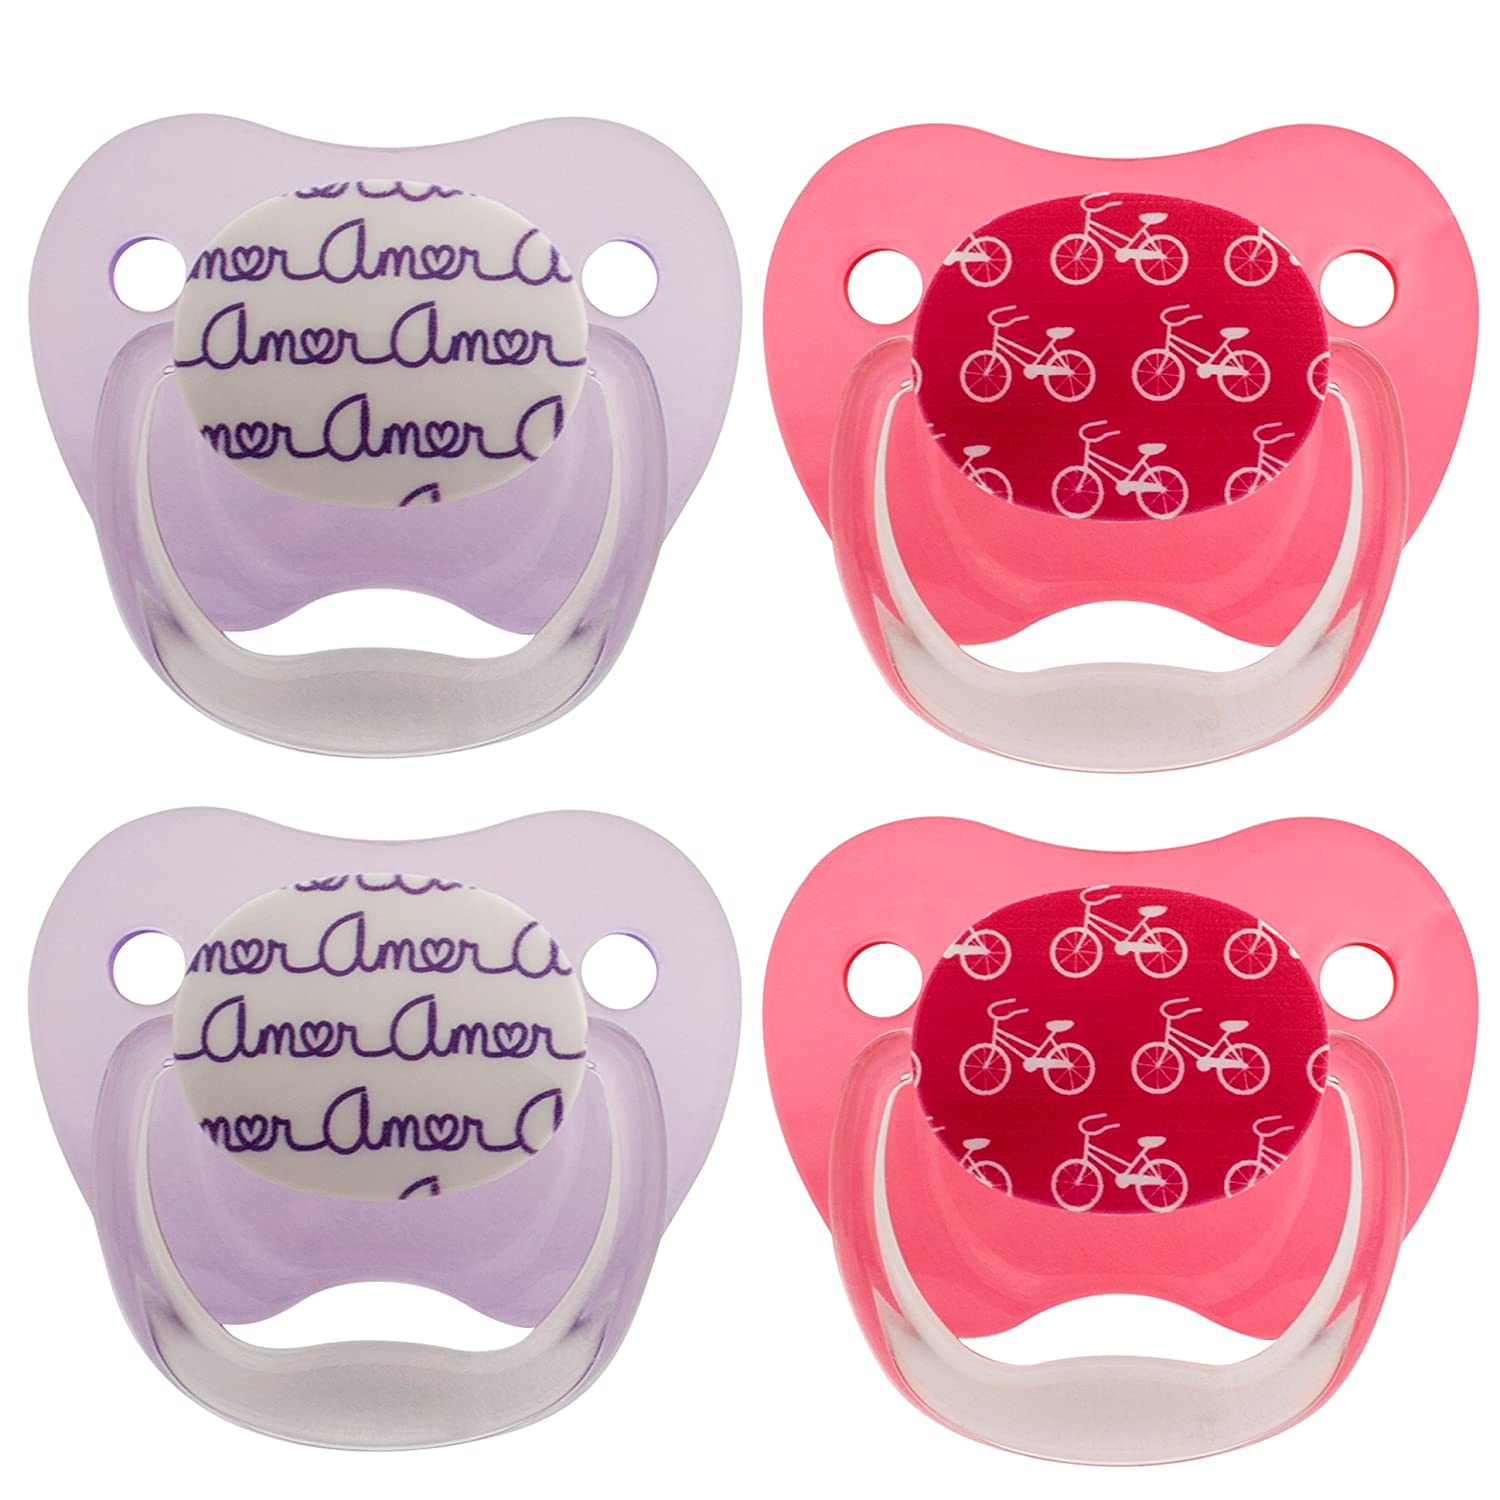 Dr. Brown's Classic Prevent Pacifier, Wild Pink, 6-12 Months+, 4 Count